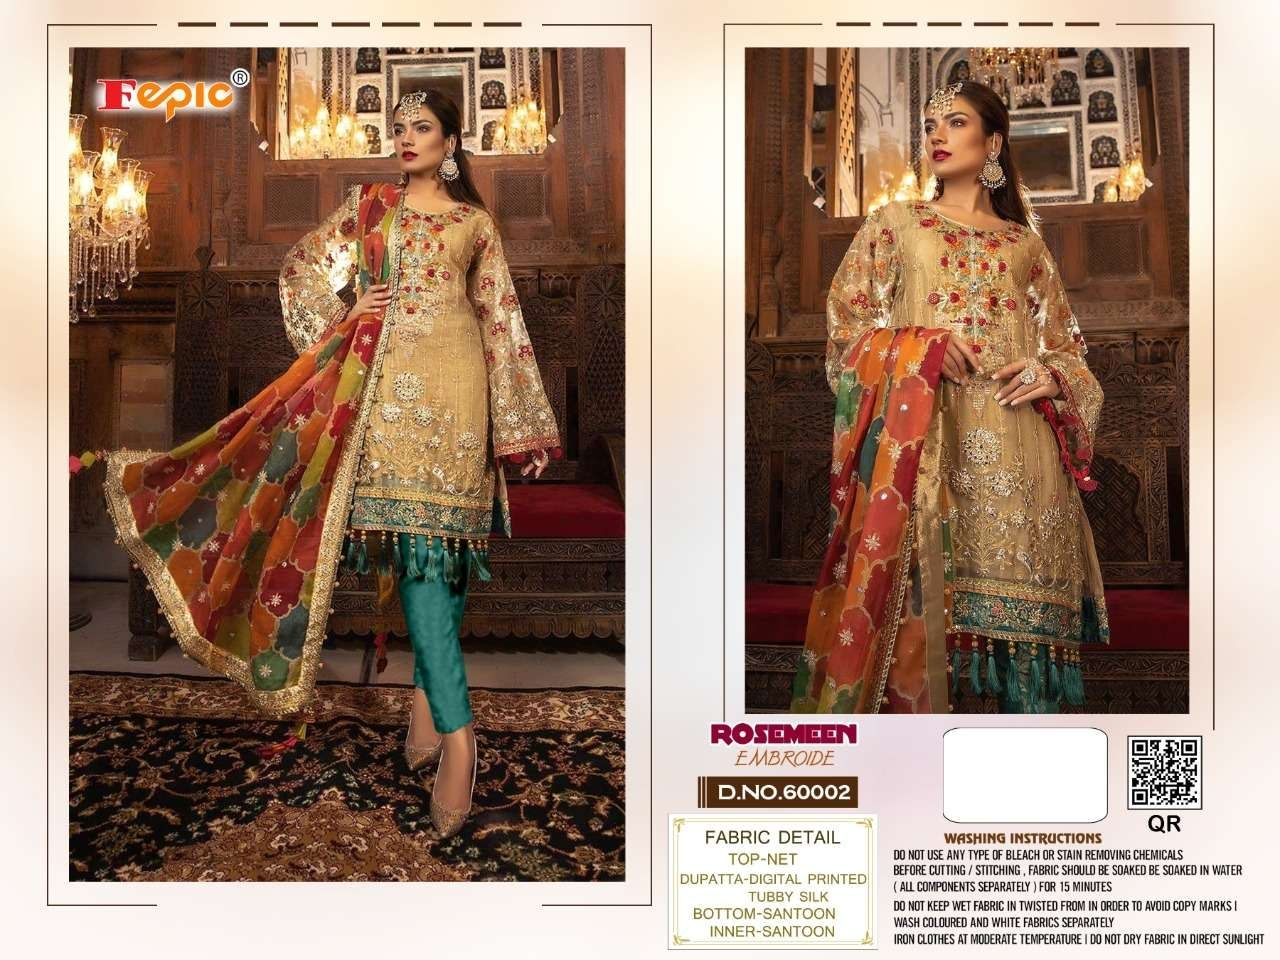 FEPIC SHARE FEPIC READY TO SHIP SINGLE SALWAR KAMEEZ 16-OCT-2021 8